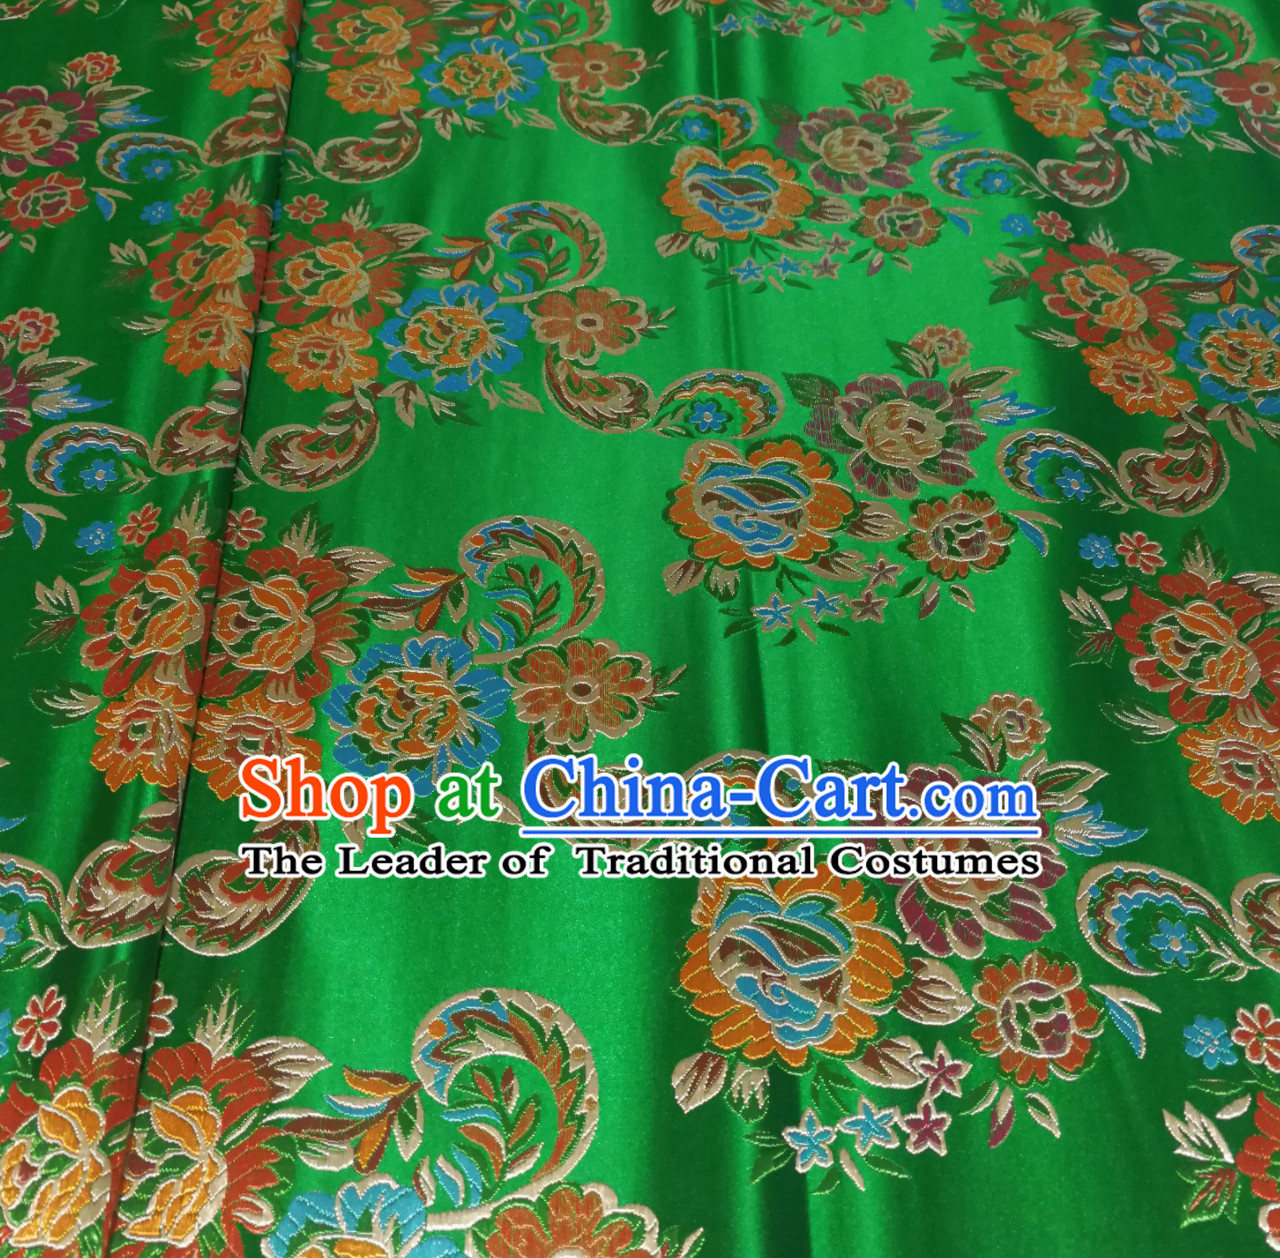 Royal Green Color Chinese Royal Palace Style Traditional Flower Peony Pattern Design Brocade Fabric Silk Fabric Chinese Fabric Asian Material